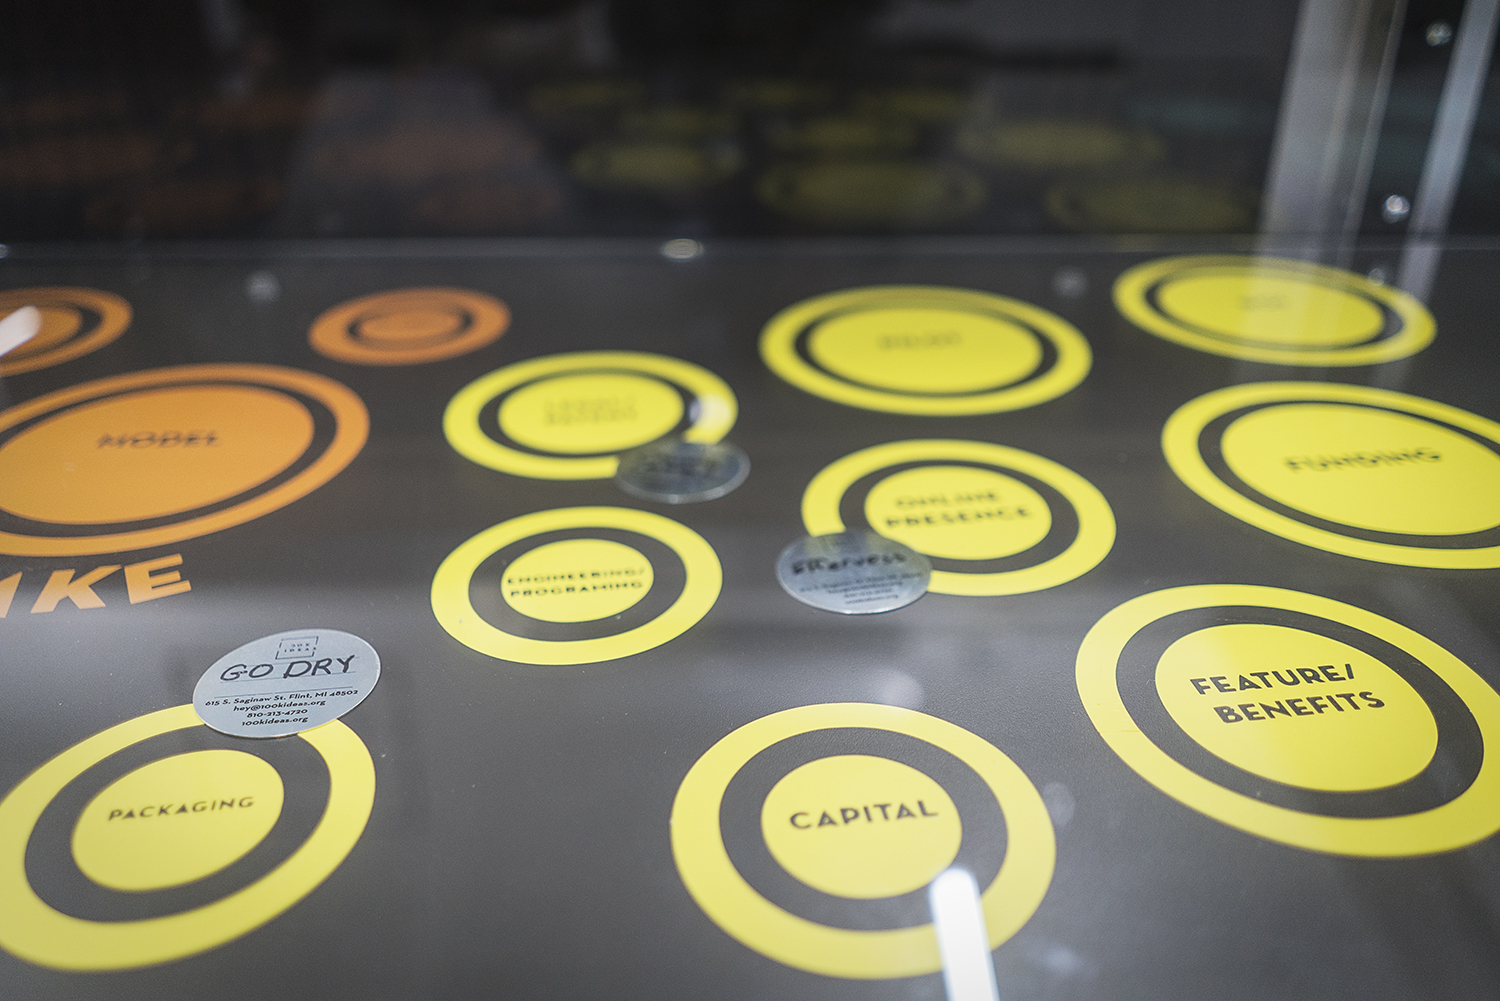 Flint, MI - Friday, December 22, 2017: The game board at 100k Ideas in the Ferris Wheel Building downtown, tracks the progress of innovators' ideas as they work closer to going to market.Tim Galloway for FlintSide